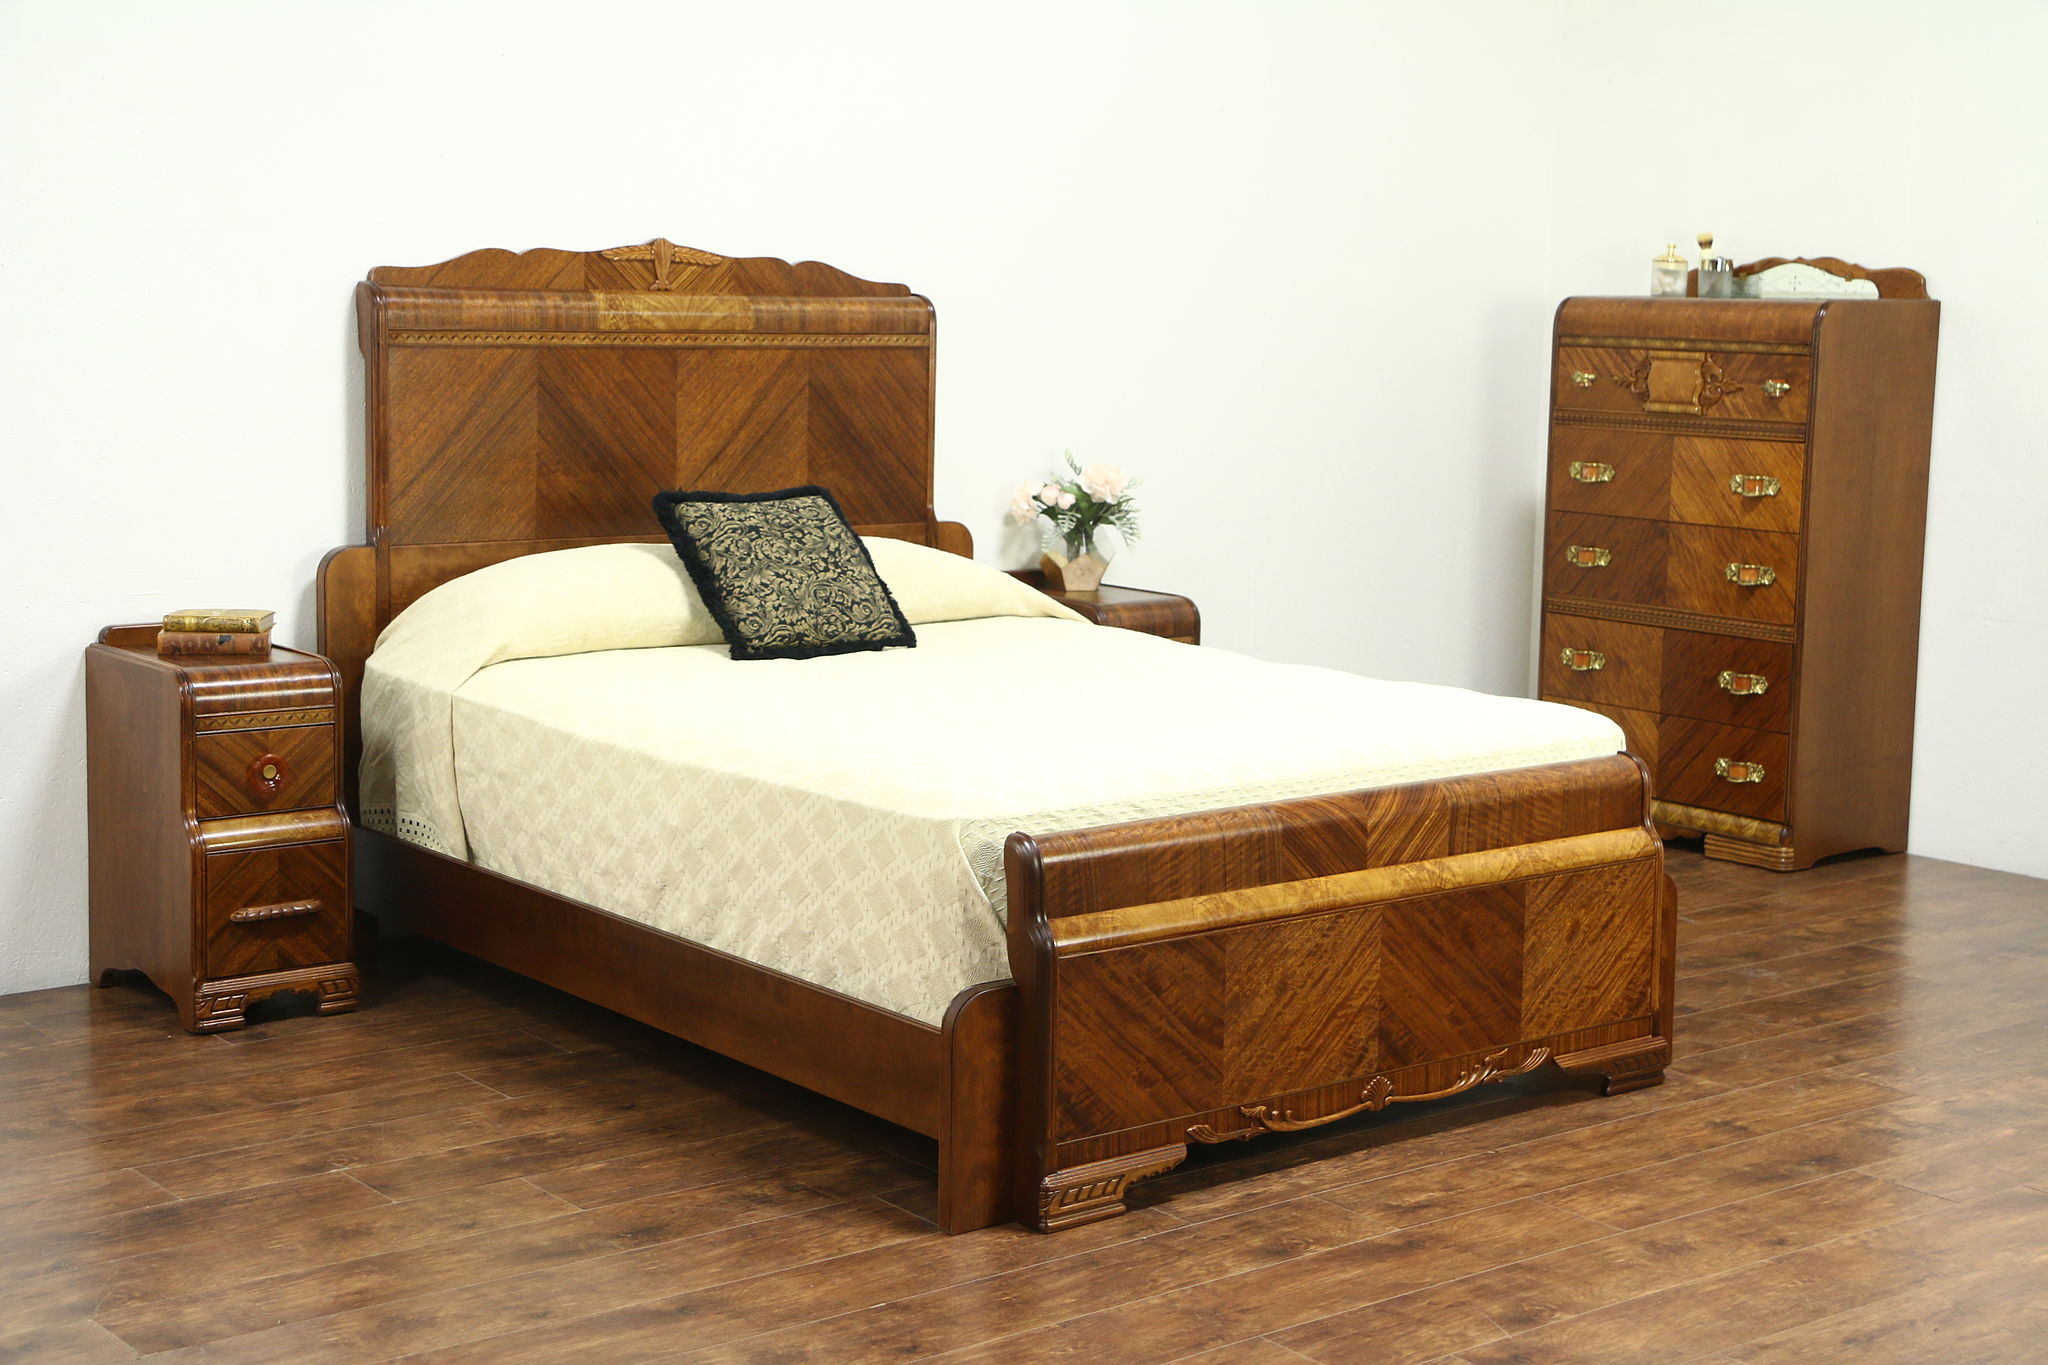 Waterfall Art Deco Vintage Bedroom Set, Queen Size Bed, Chest, 2 ...